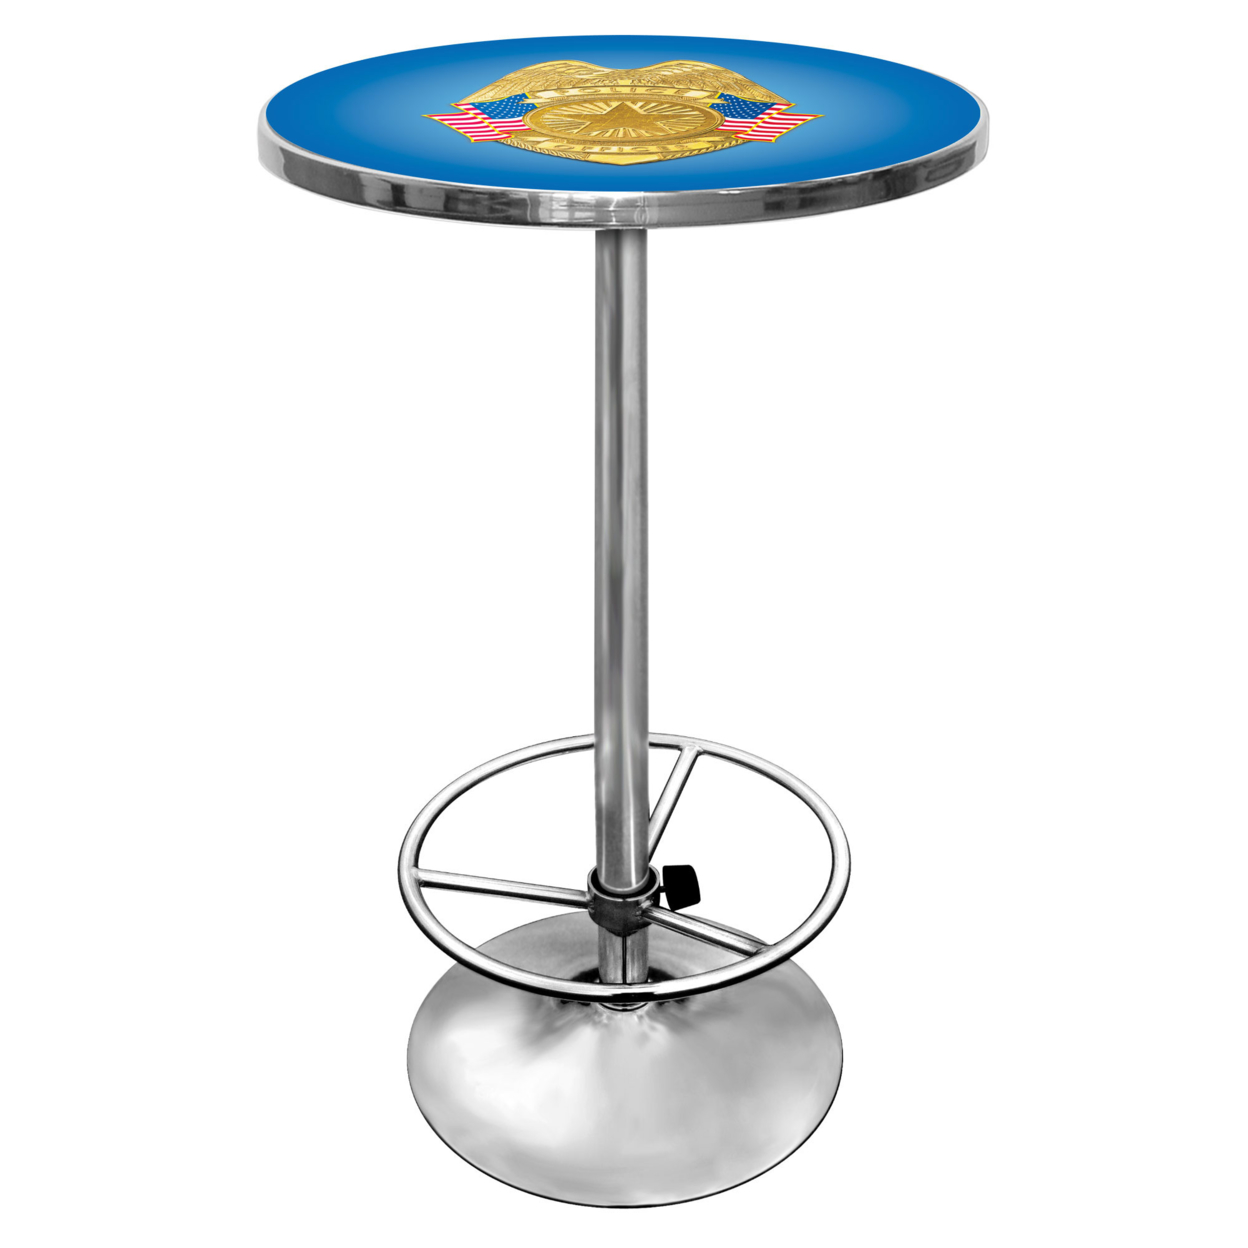 Police Officer Chrome 42 Inch Pub Table police plc 12895ls 02m police